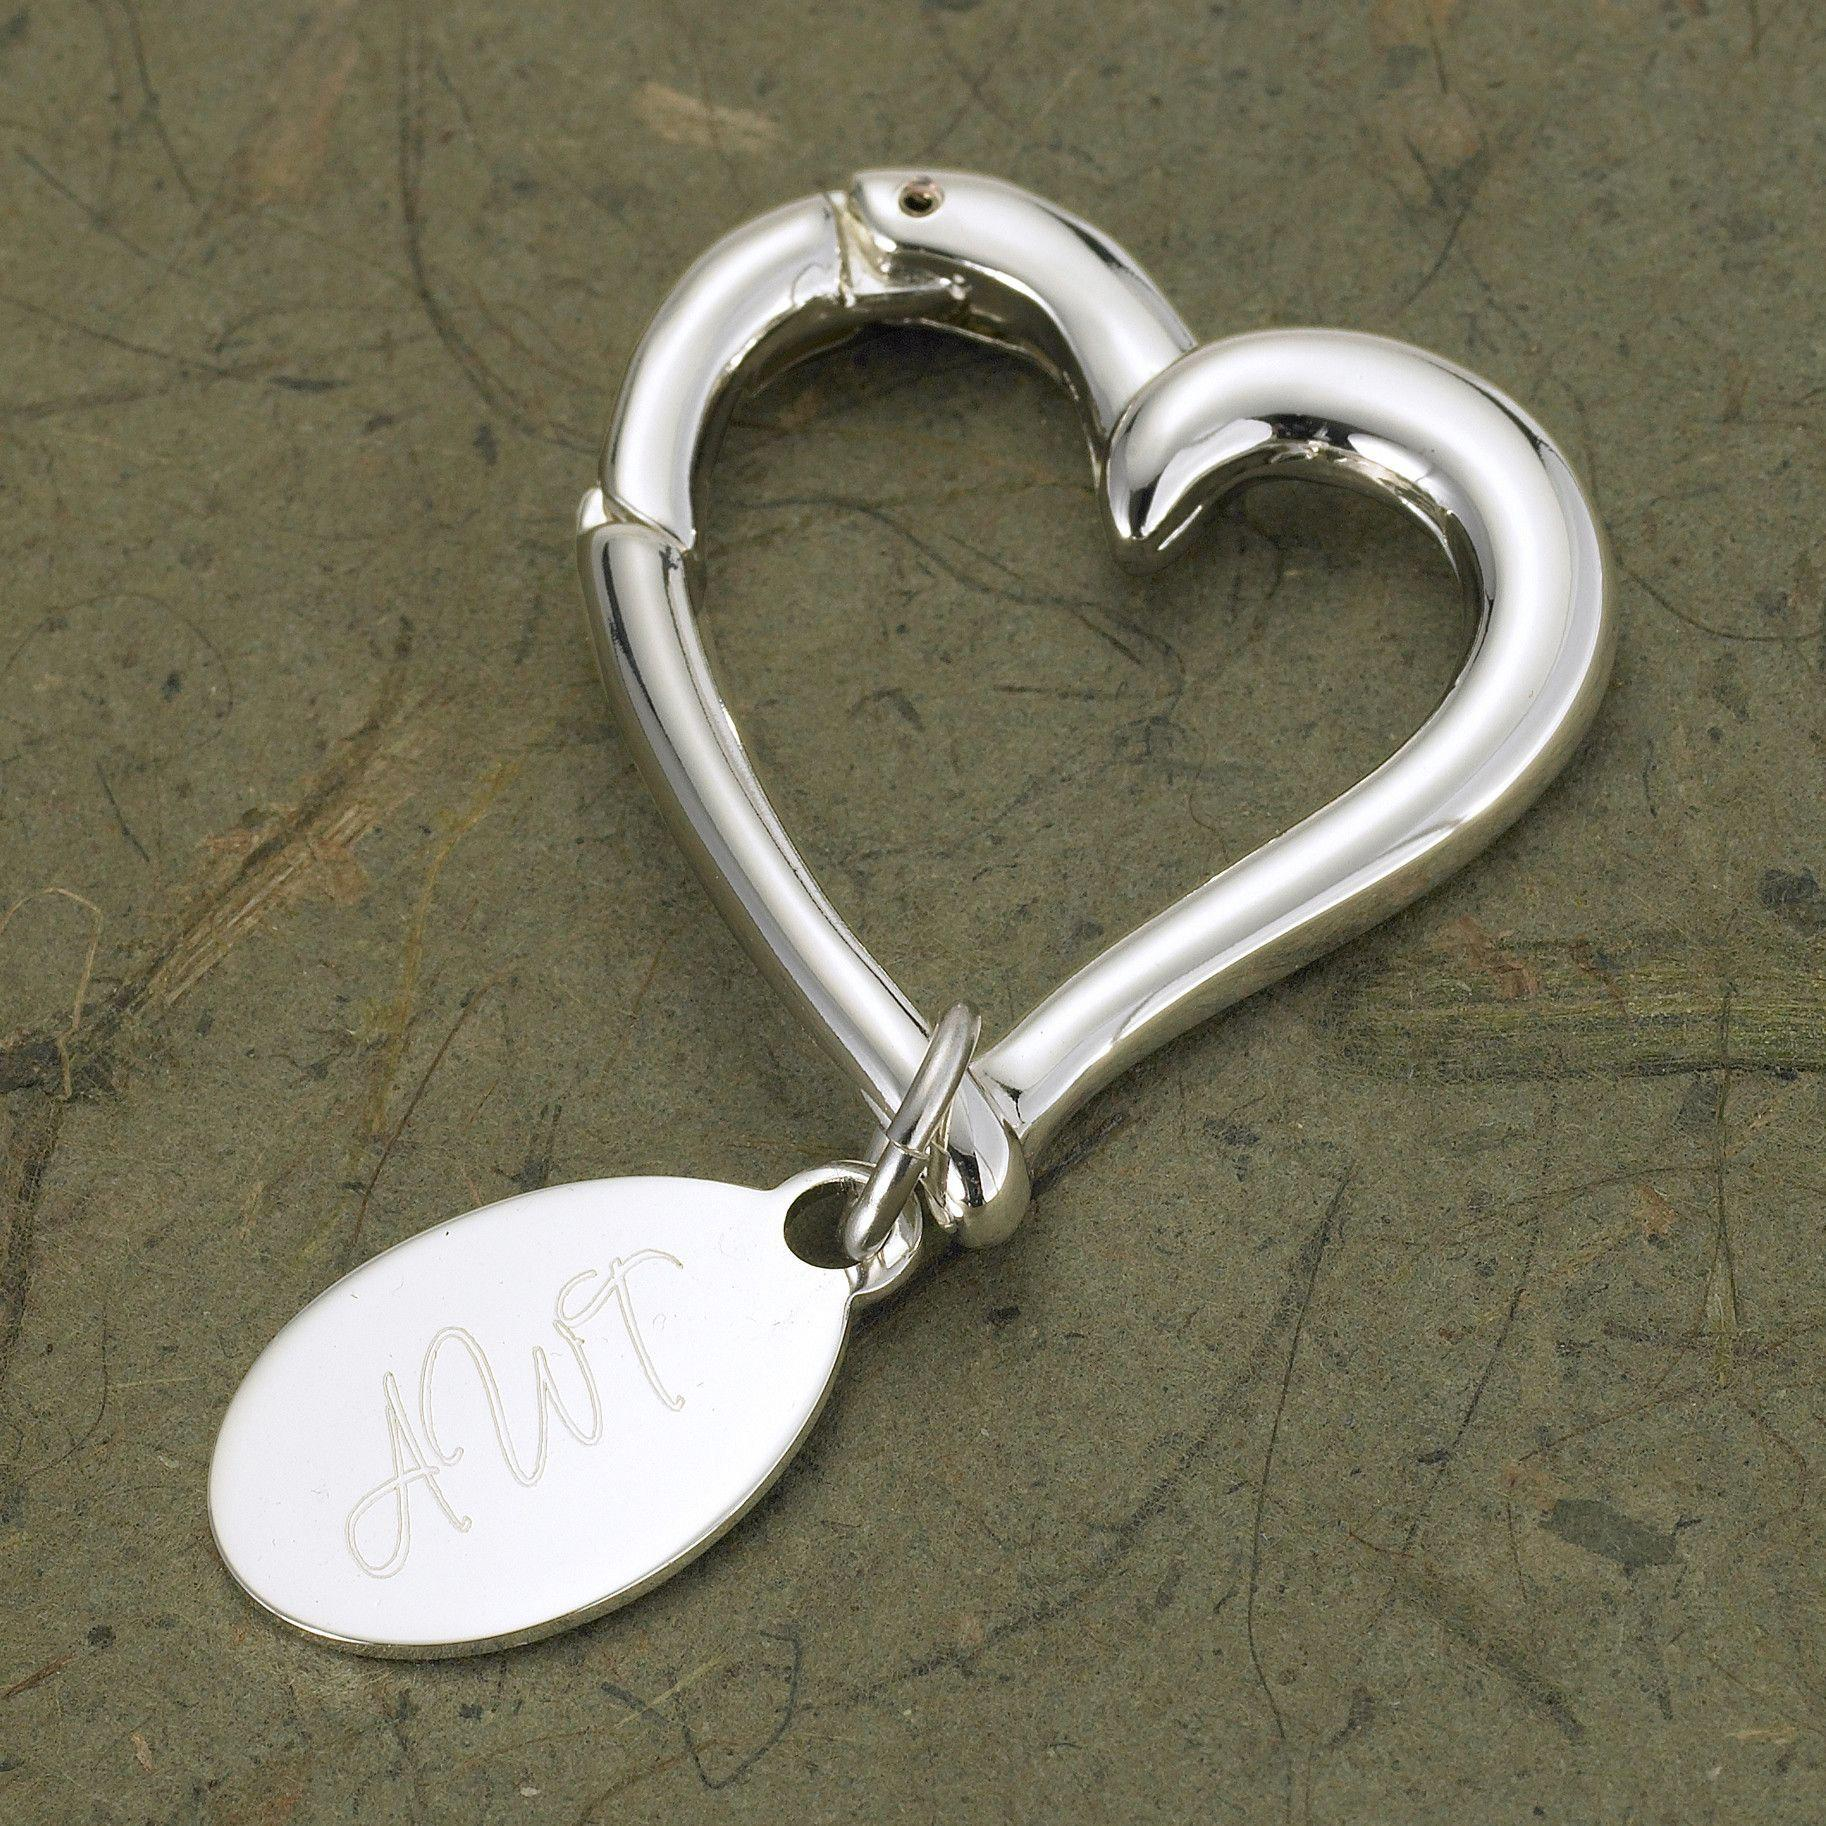 Personalized-Heart-Keychain-with-Oval-Tag